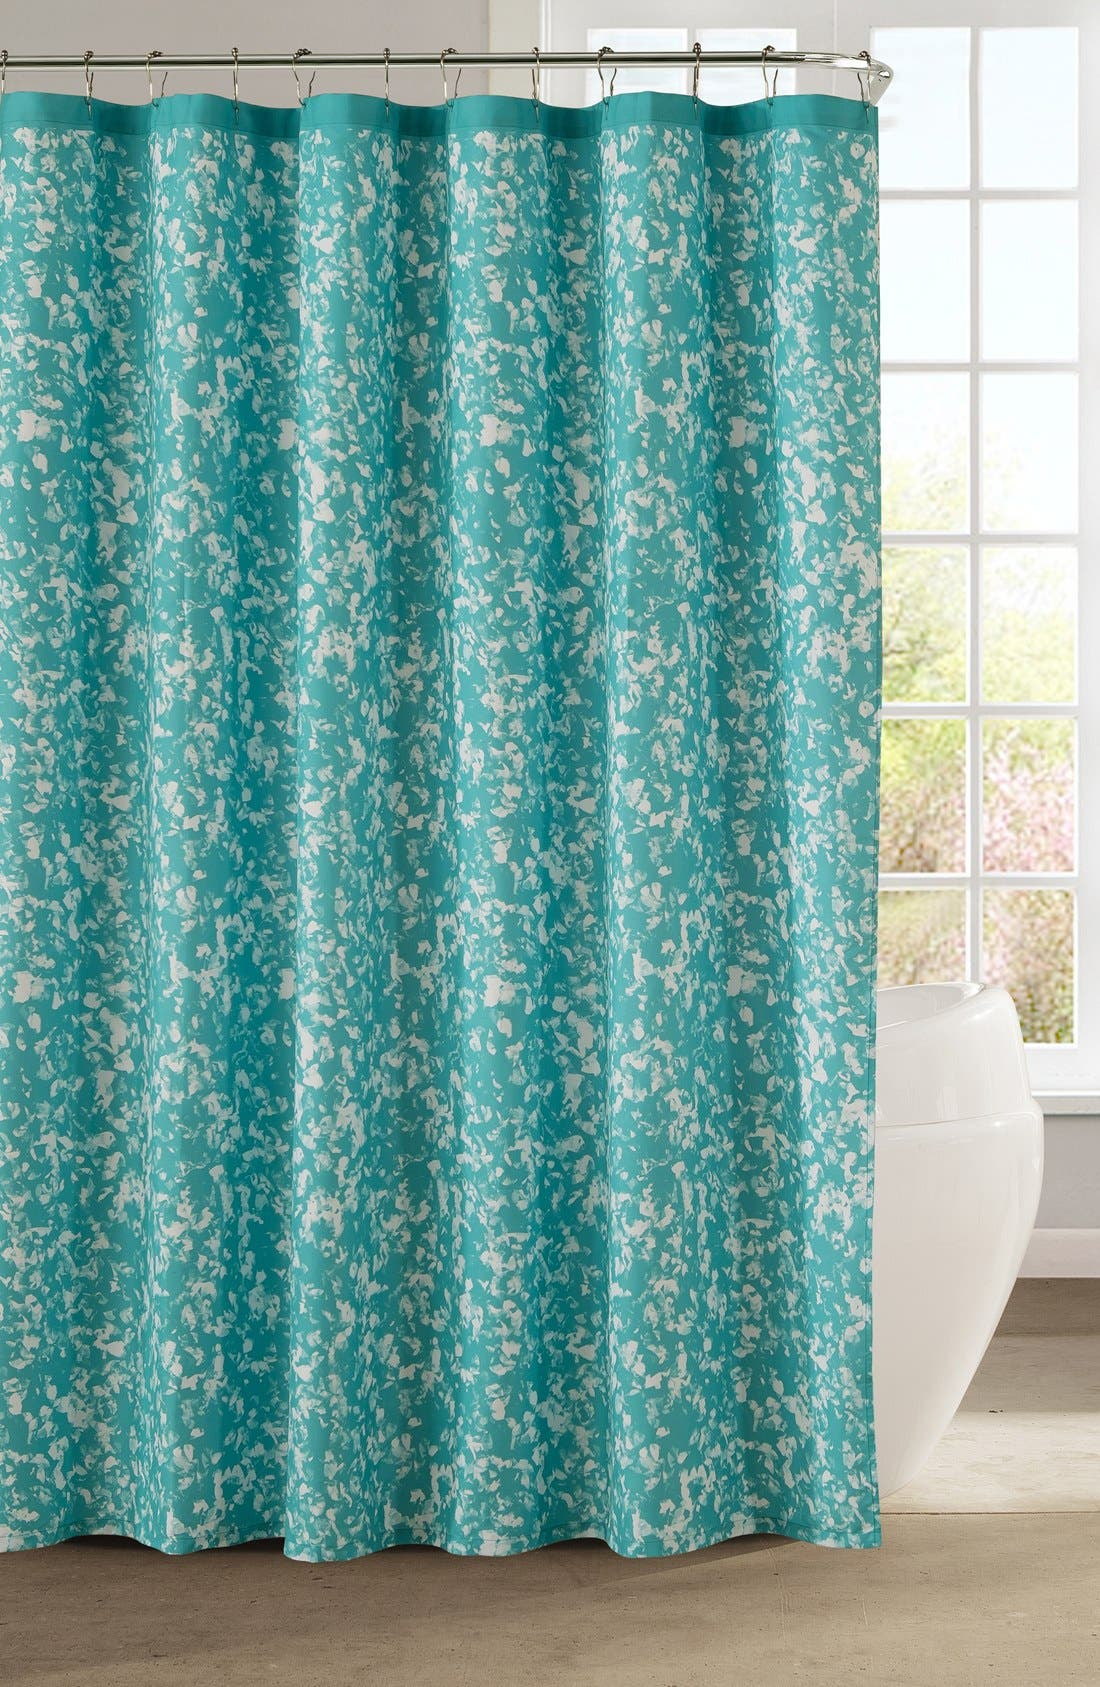 'Susie' Shower Curtain,                             Main thumbnail 1, color,                             448